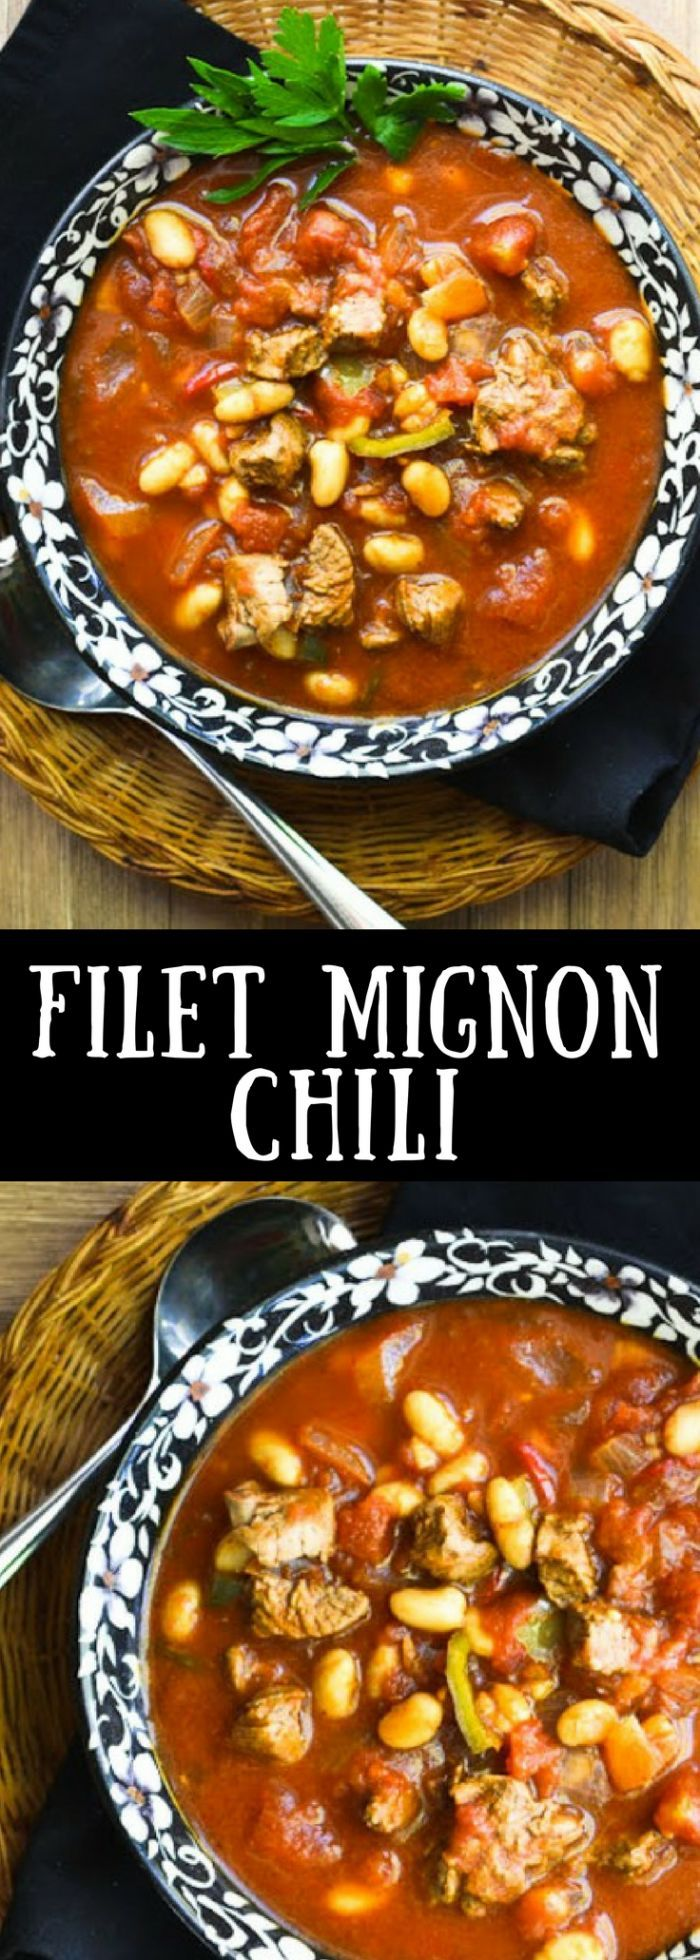 I saw Filet Mignon Chili on a restaurant menu once and knew I to try it at home. Filet mignon is a splurge, but a little goes a long way in a big pot of chili and makes this classic comfort dish extra special. #chili #stew #beef #groundbeef #dinner #comfortfood #beefstew #filetmignon #steakchili #steak